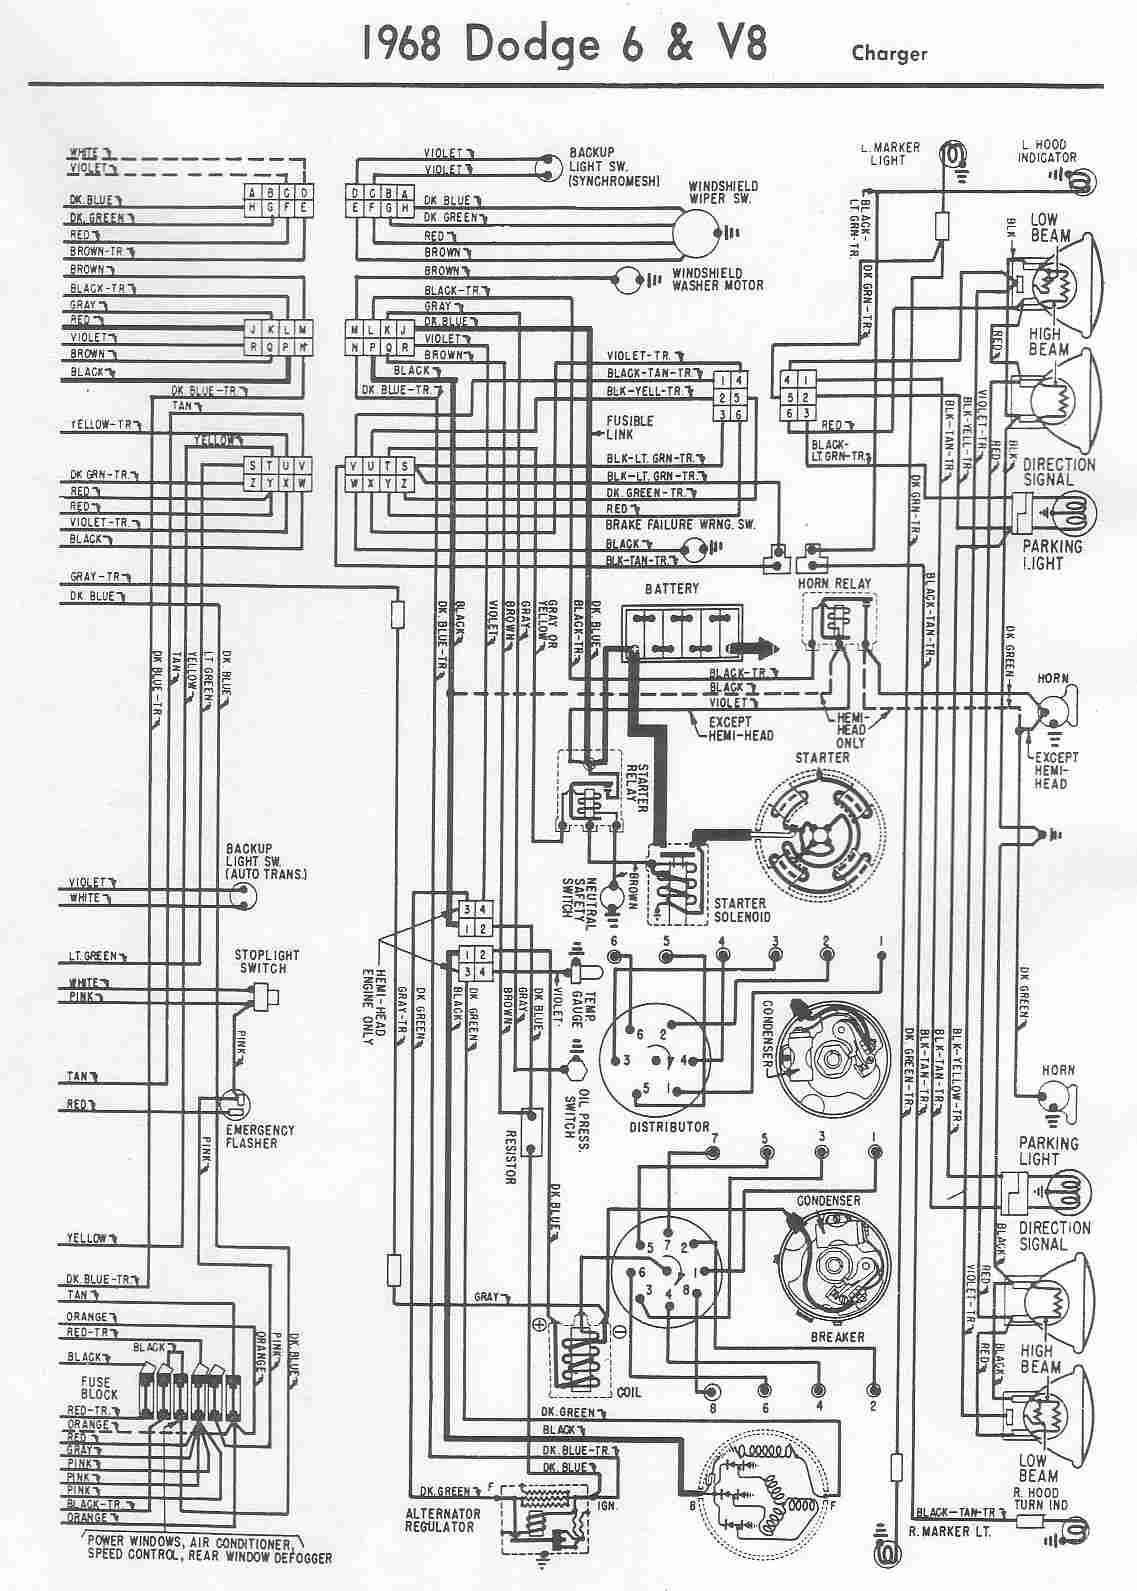 charger electrical wiring diagram of 1968 dodge 6 and v8?t=1508404771 dodge car manuals, wiring diagrams pdf & fault codes Multi Speed Blower Motor Wiring at soozxer.org